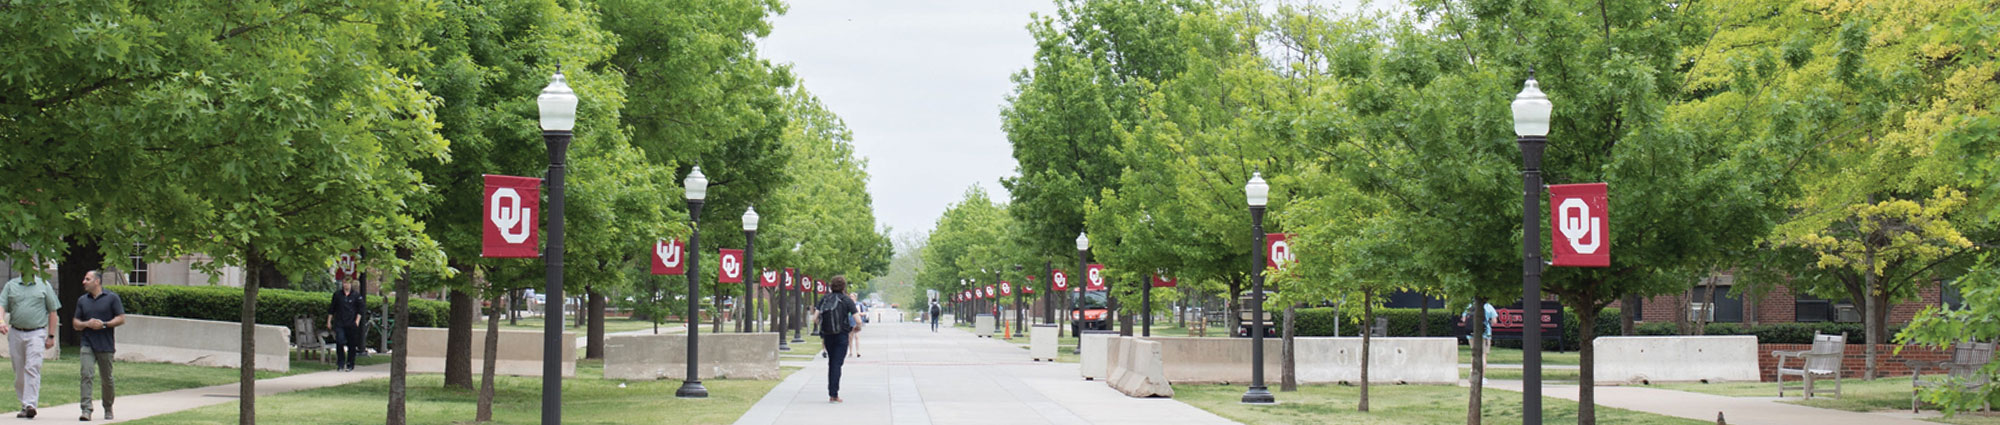 sidewalk with many trees and lampposts with OU flags on each side